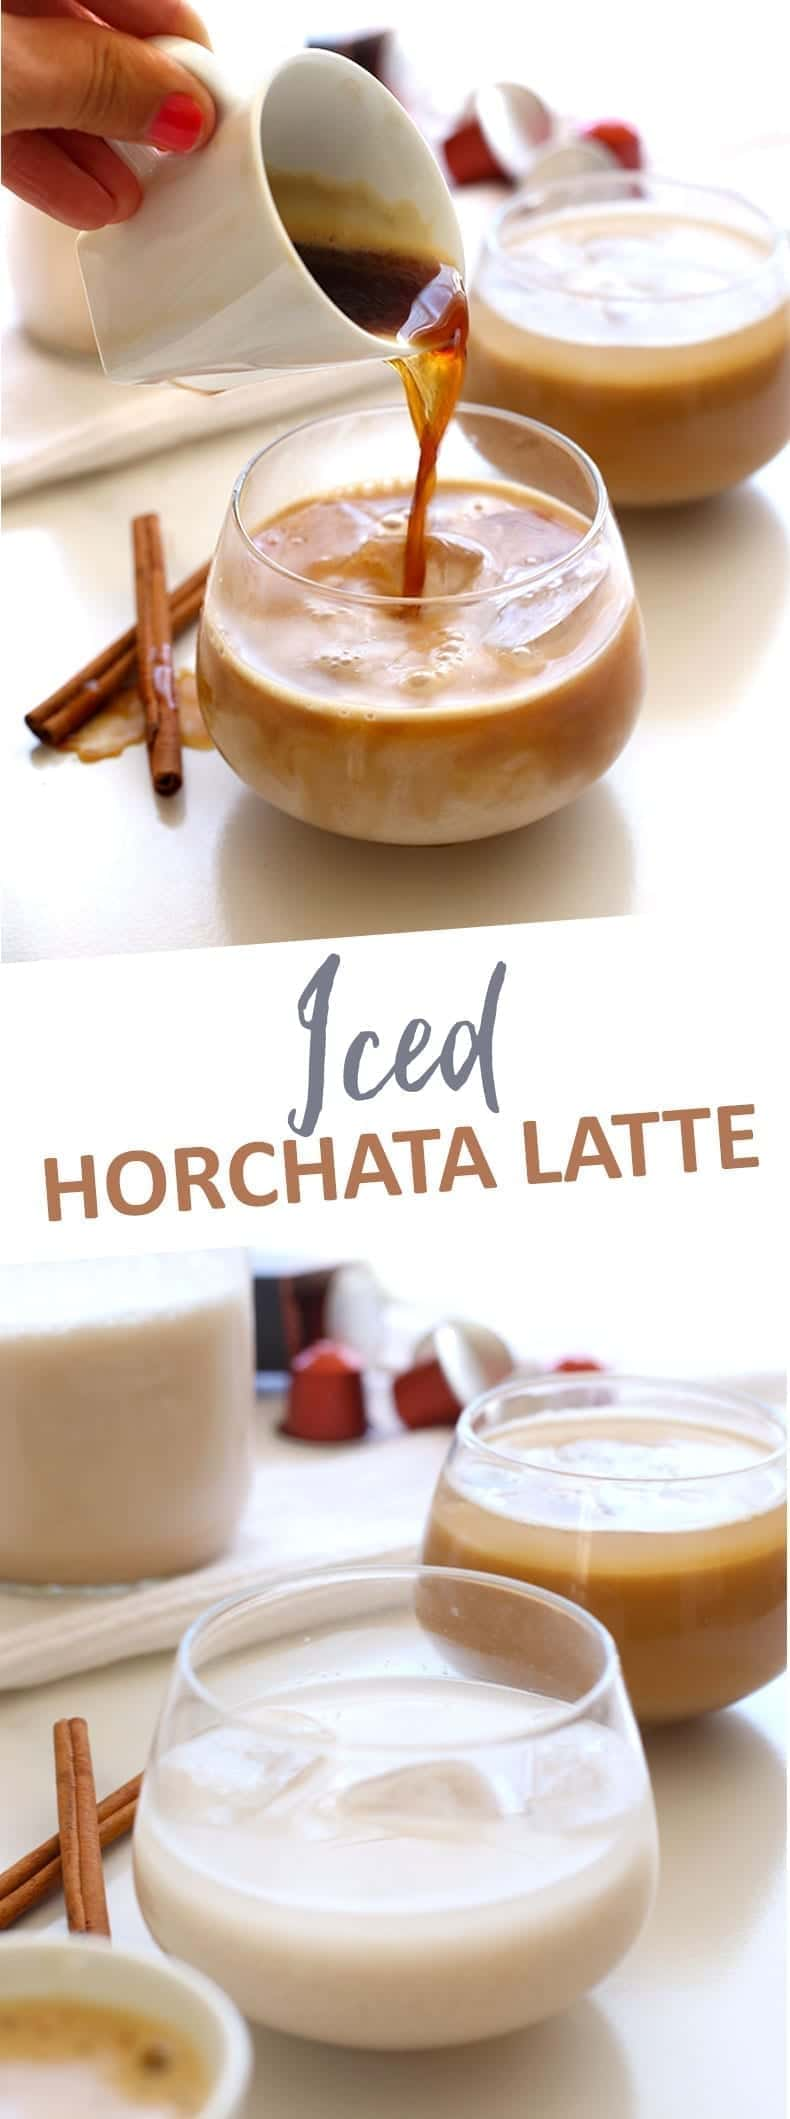 Mexican flavors meet espresso in this sweet and smooth Iced Horchata Latte. Made with brown rice, almonds, cinnamon and Nespresso this drink recipe will be the most refreshing start to your day all summer long!